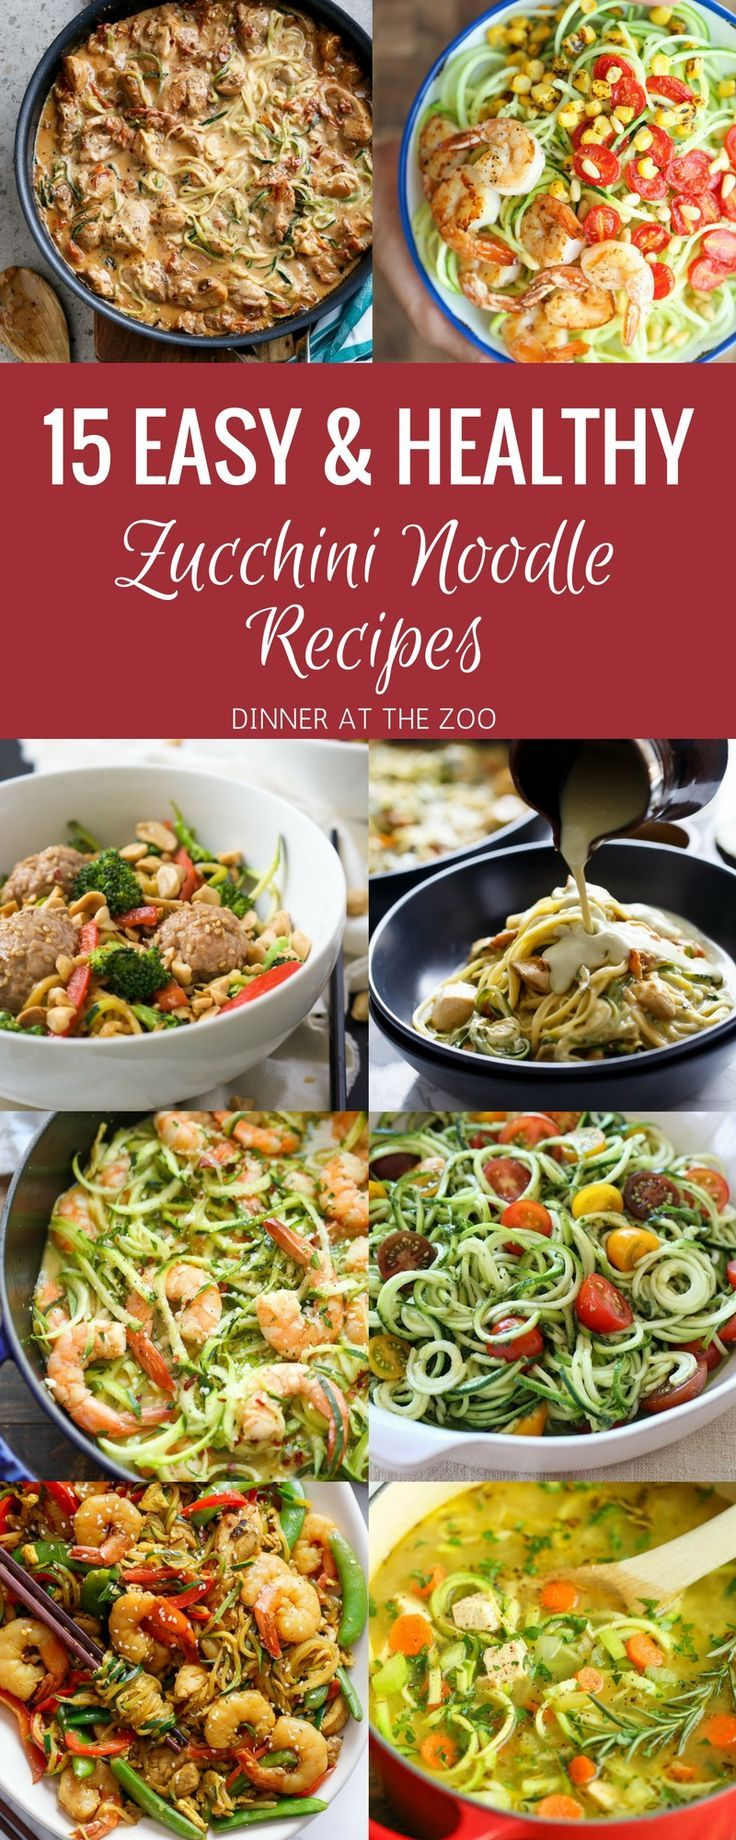 15 Easy \u0026 Healthy Zoodle (Zucchini Noodle) Recipes